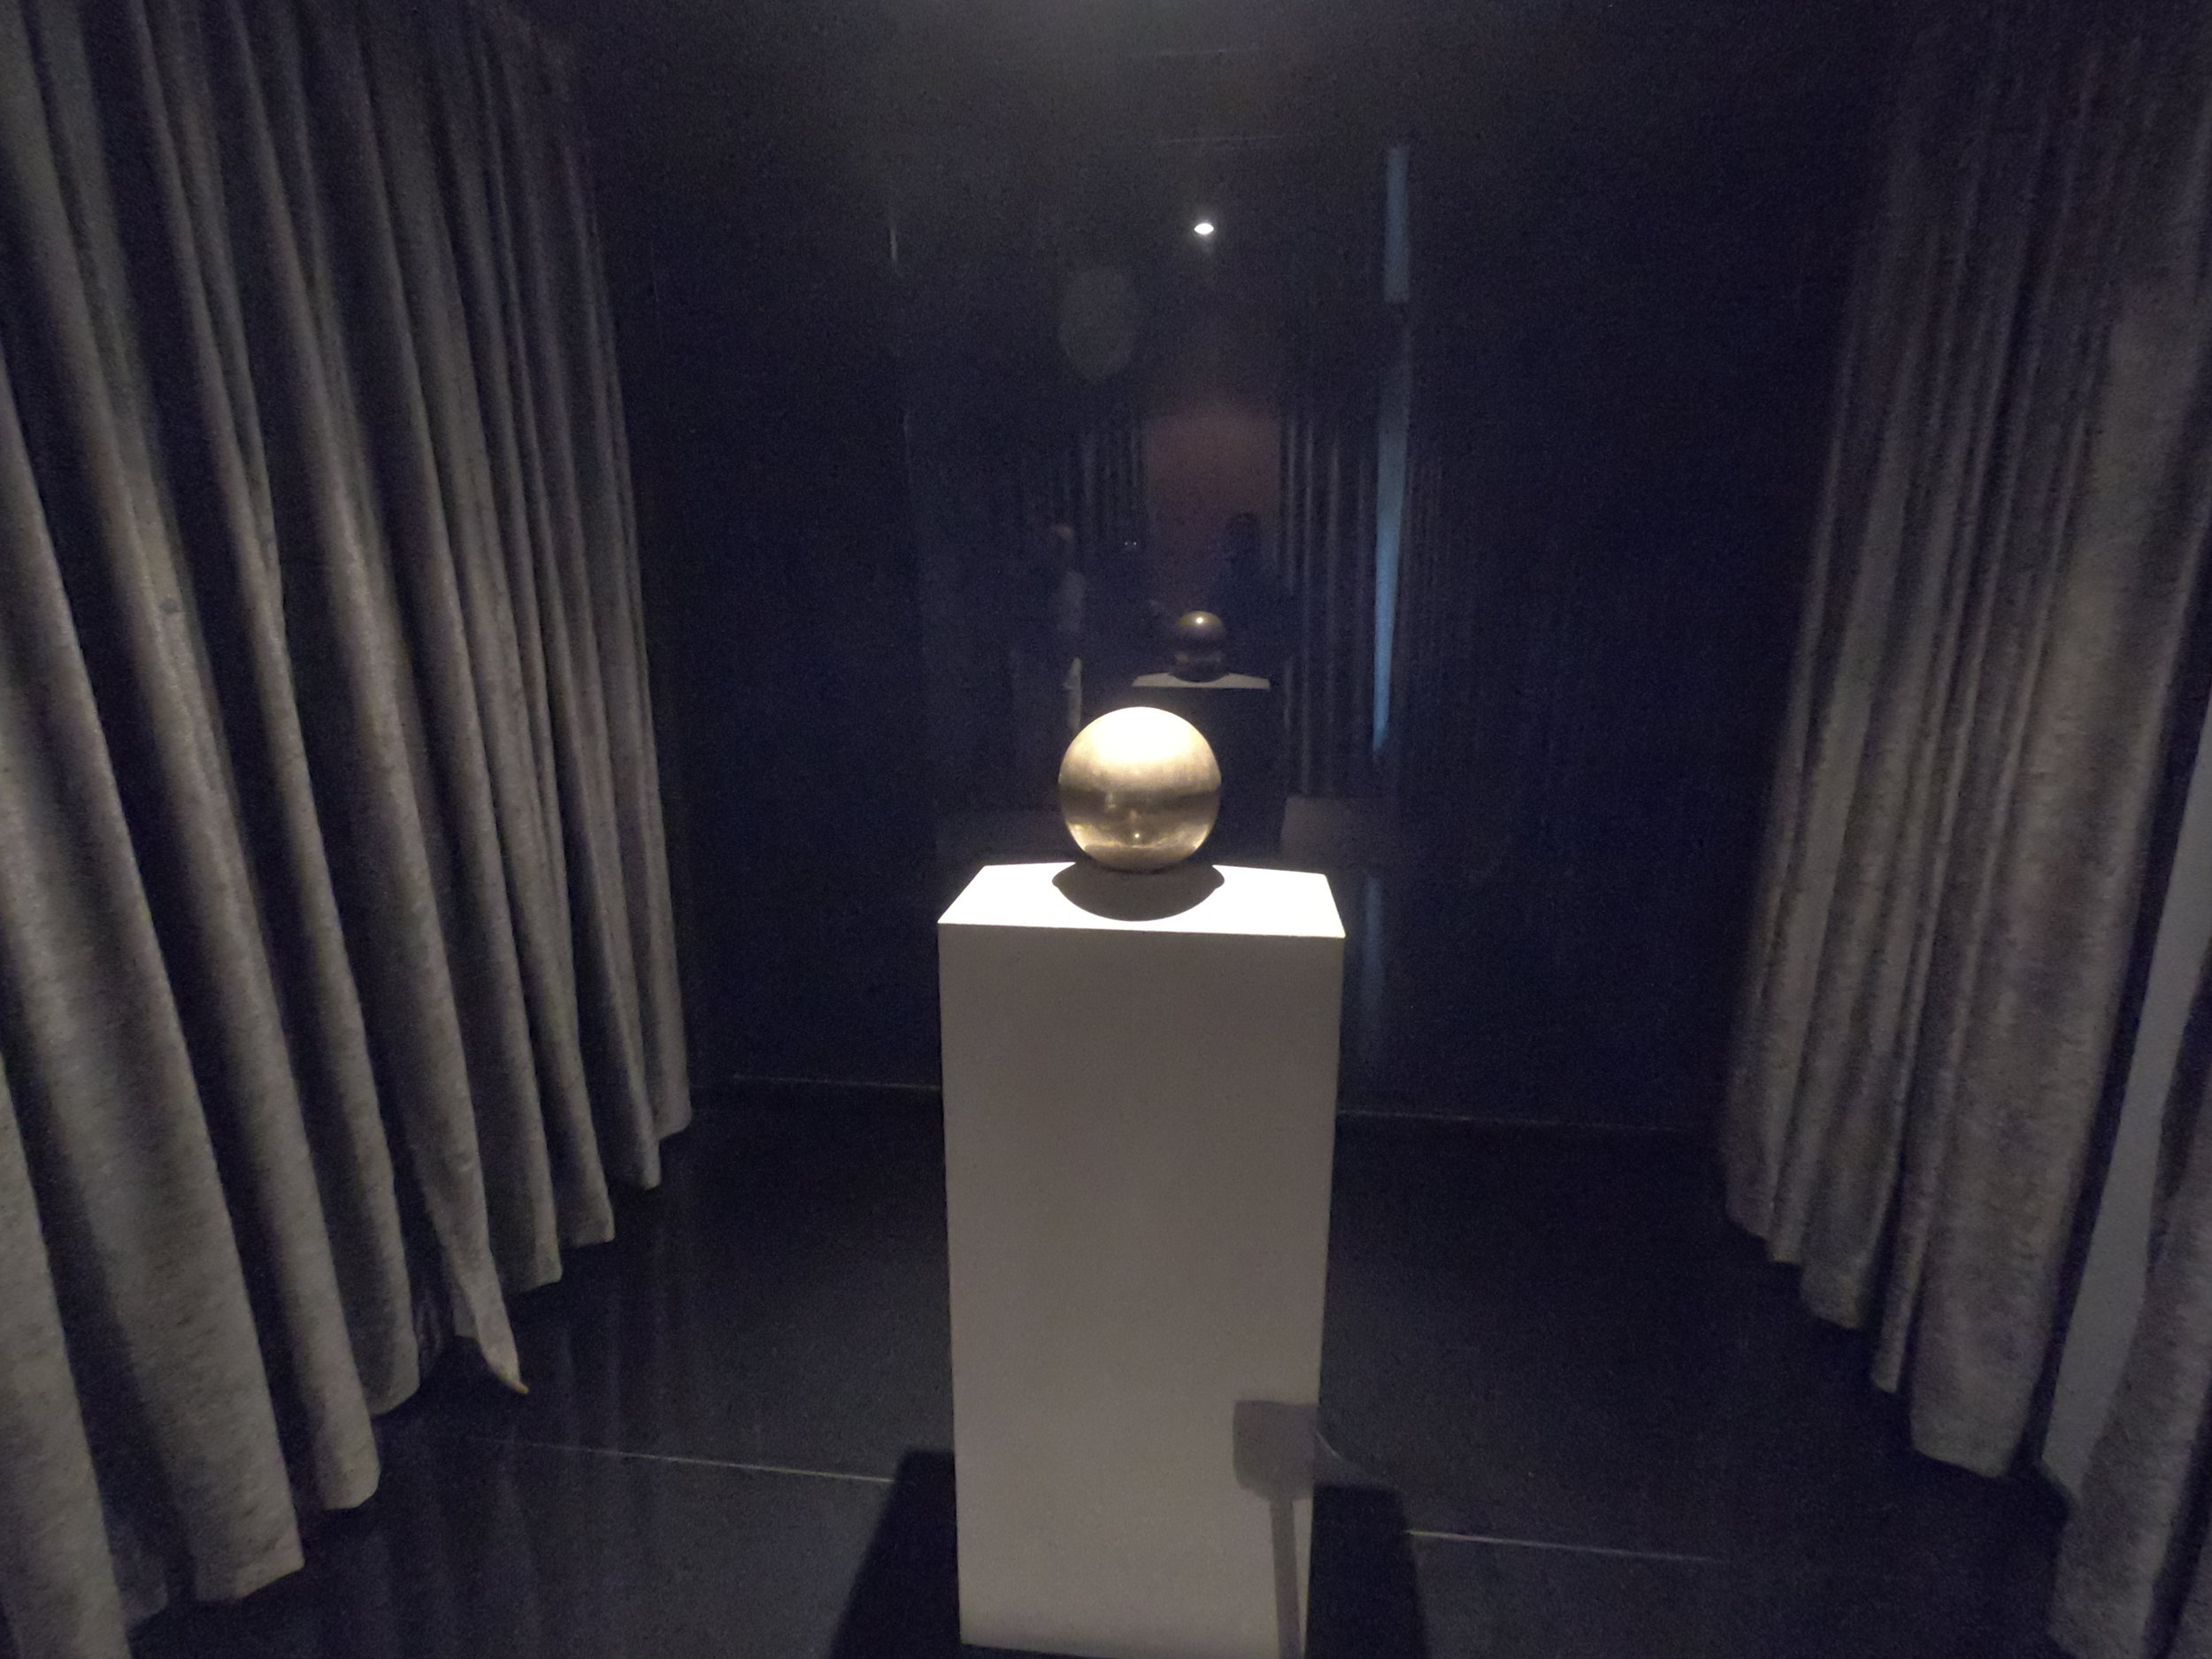 The Urn containing the ashes of the great man himself!